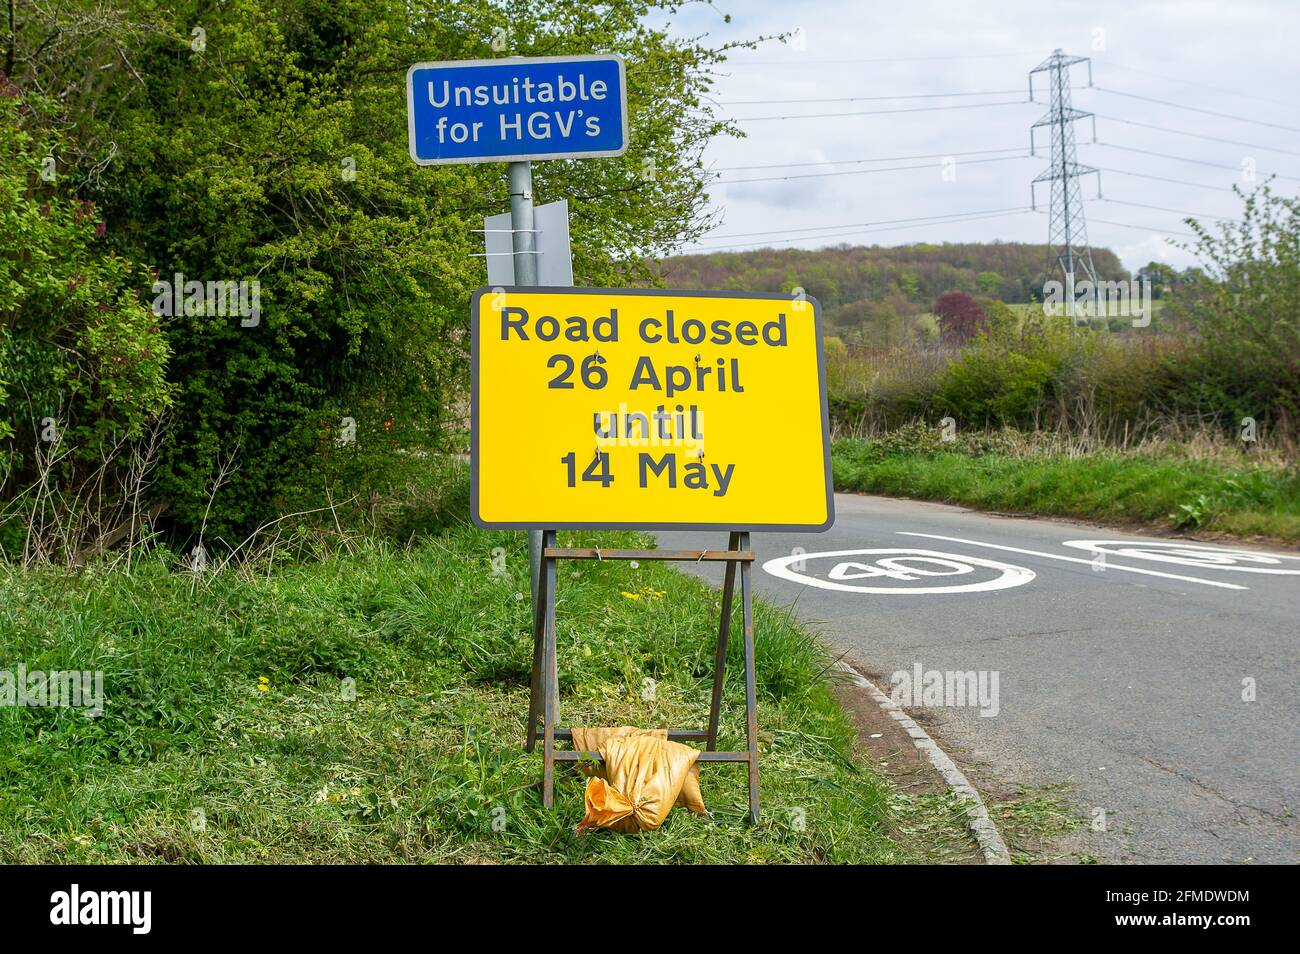 Aylesbury Vale, Buckinghamshire, UK. 29th April, 2021. HS2 have closed Rocky Road until 14th May 2021 for more work on the construction of the High Speed Rail from London to Birmingham. HS2 Security are stopping traffic and HS2 CCTV cameras are being used by HS2. HS2 have also closed a number of local footpaths including the bridleway from Rocky Lane to Durham Farm, however, none of the footpath closures are listed by Buckinghamshire Council on their website. Credit: Maureen McLean/Alamy Stock Photo